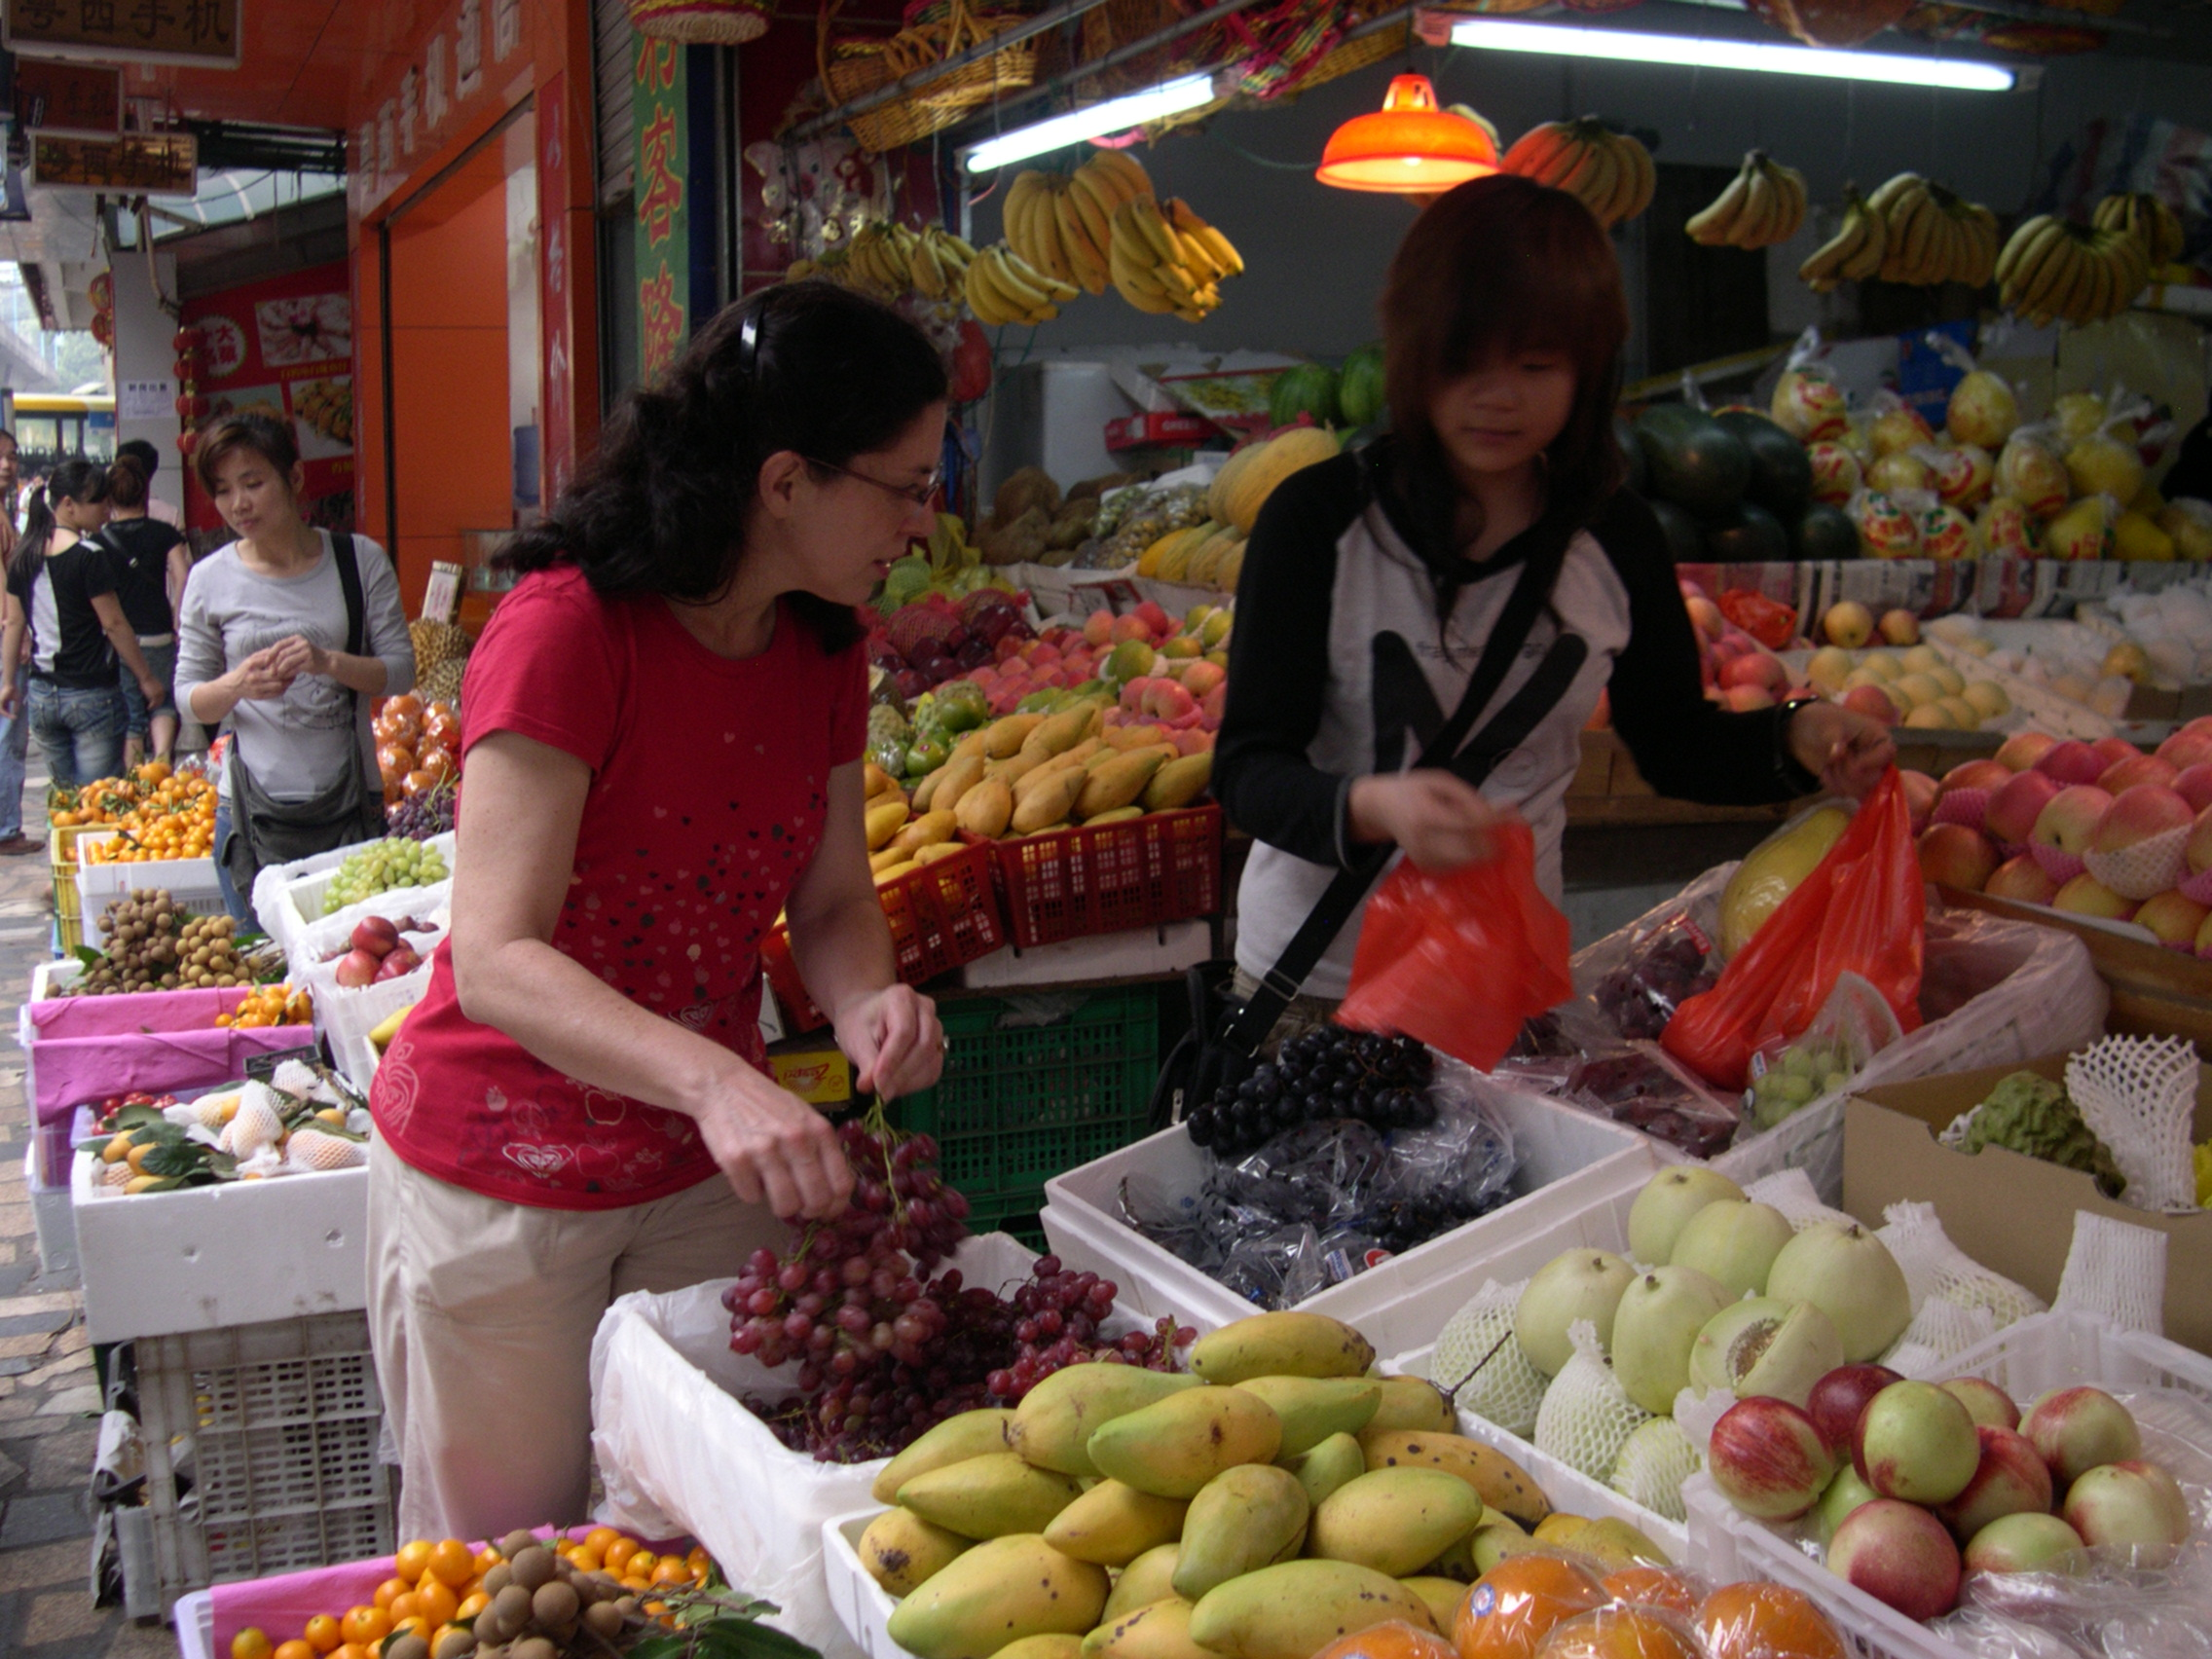 my sister shopping at the fruit market